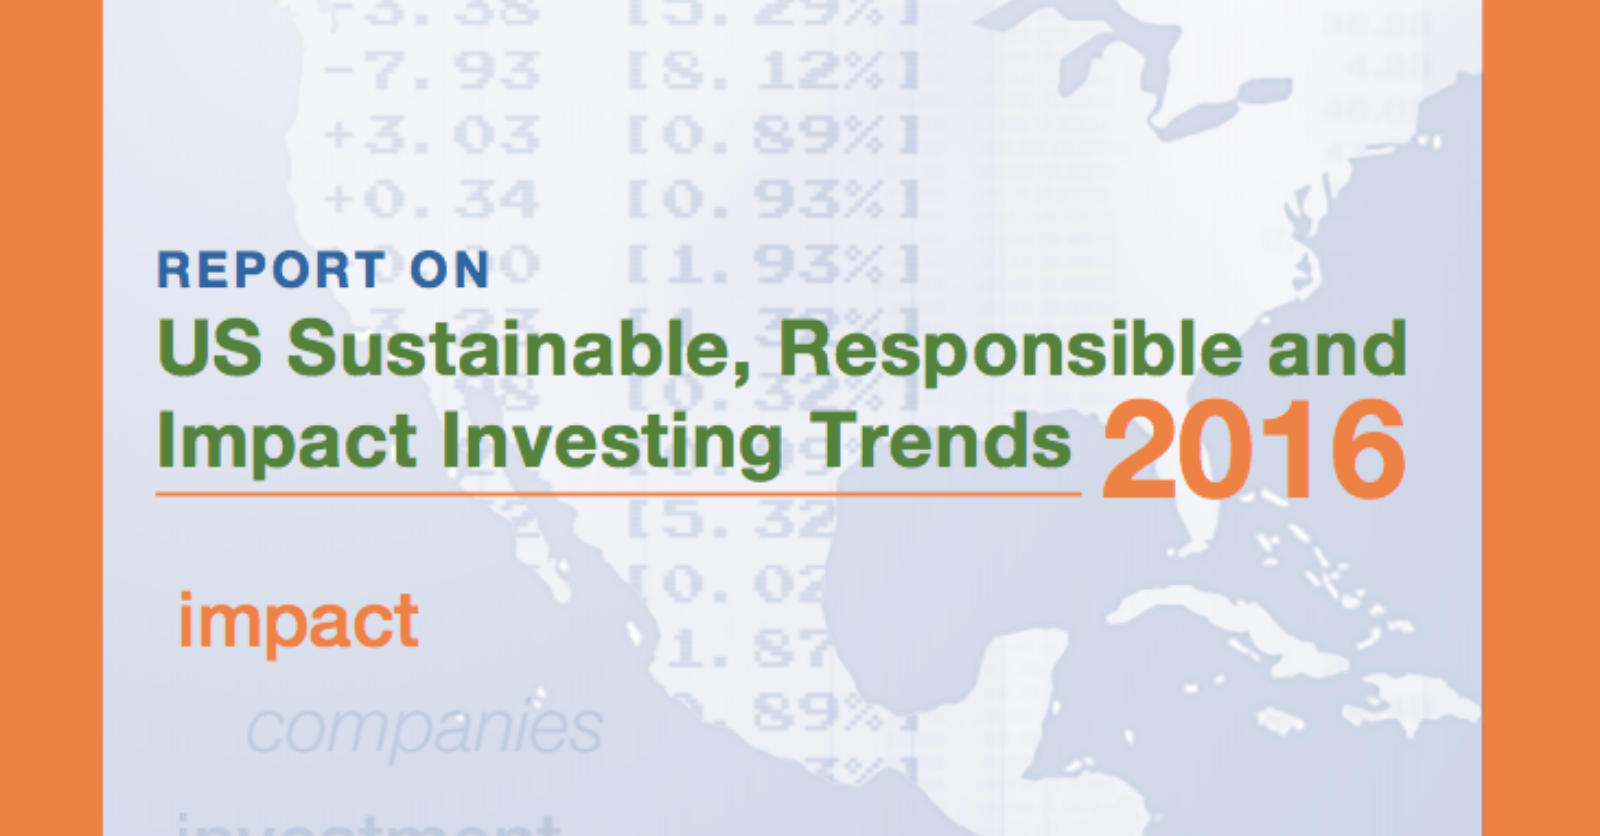 Report on US Sustainable, Responsible, and Impact Investing Trends 2016